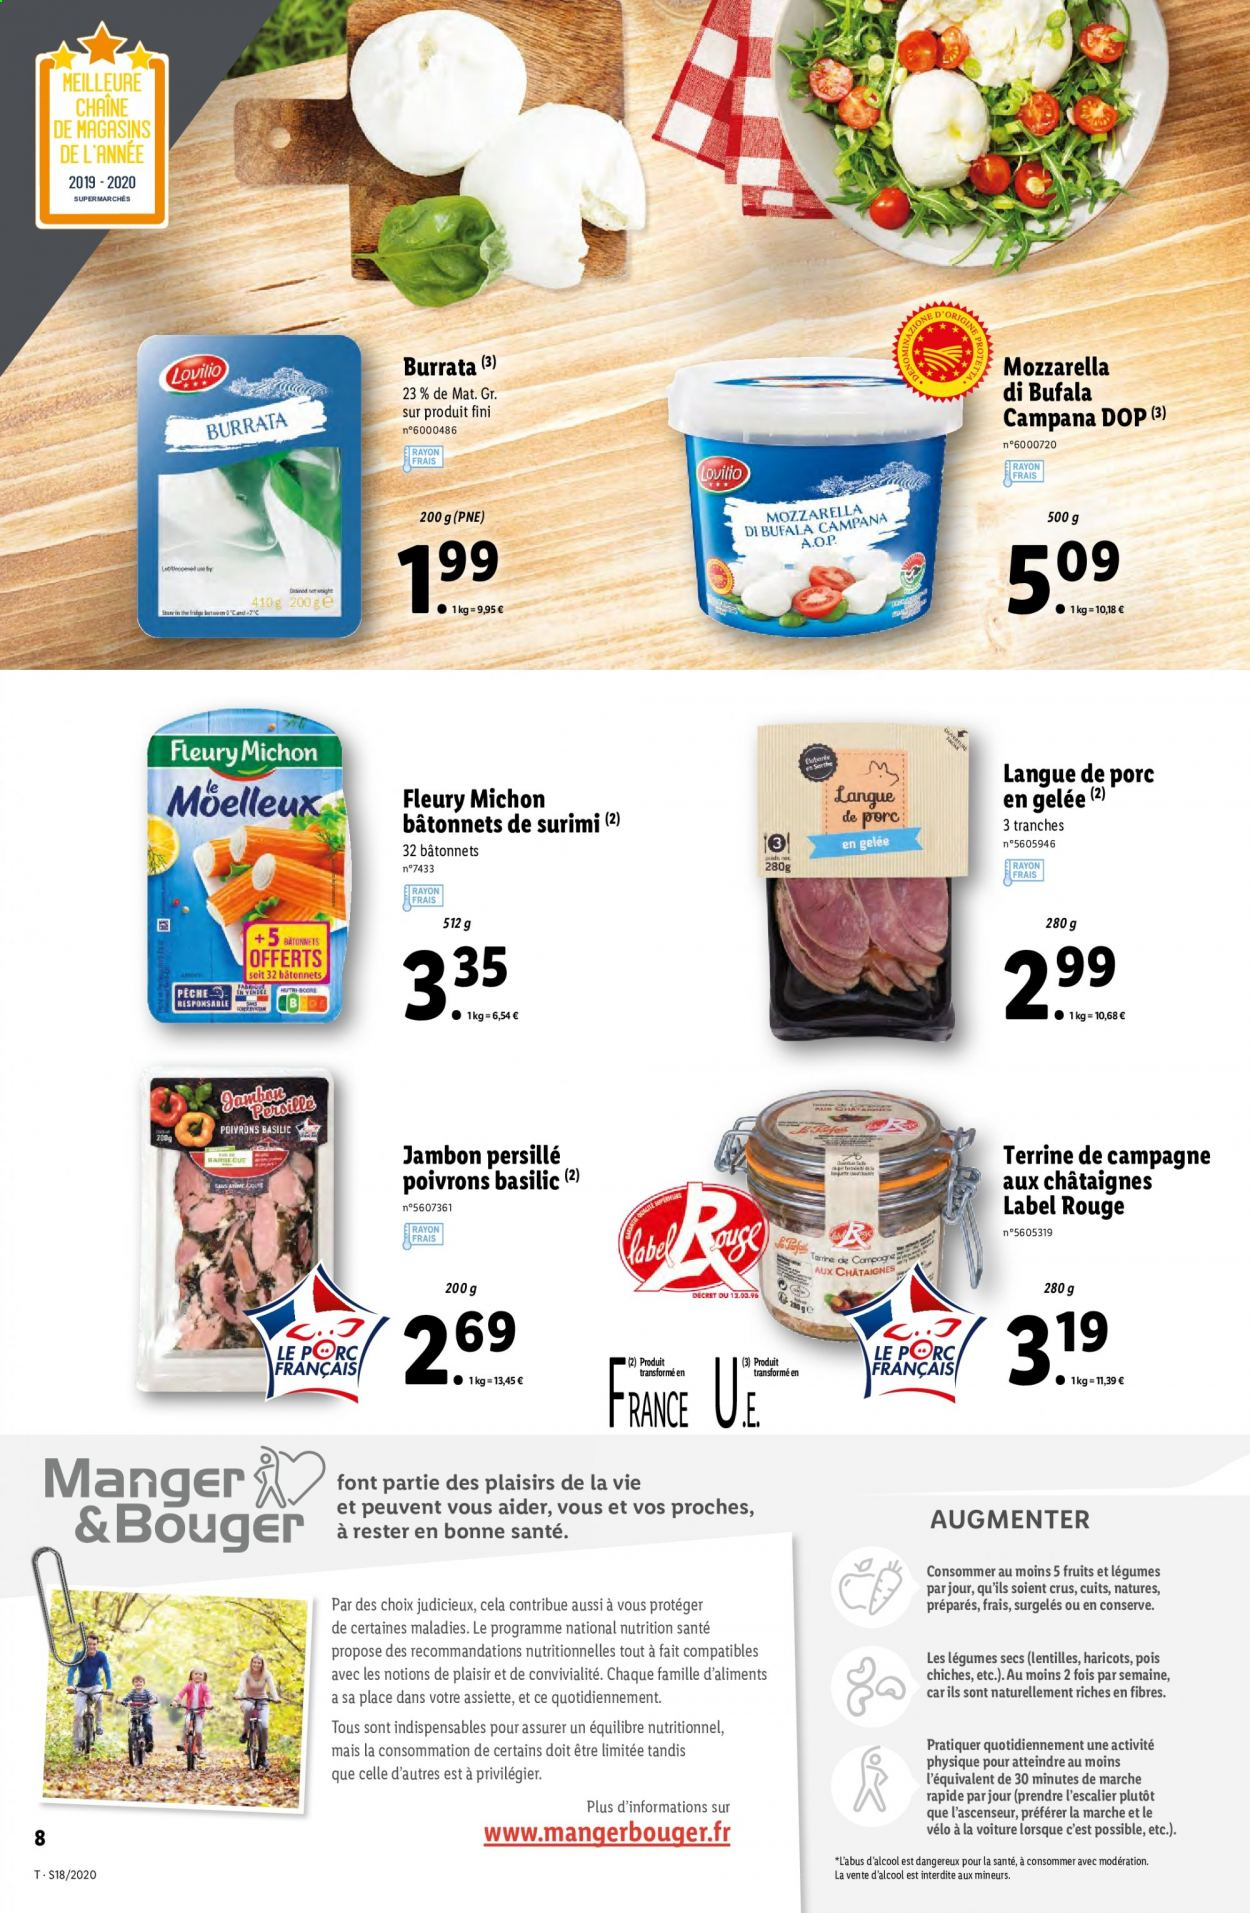 Catalogue Lidl - 29.04.2020 - 05.05.2020. Page 8.